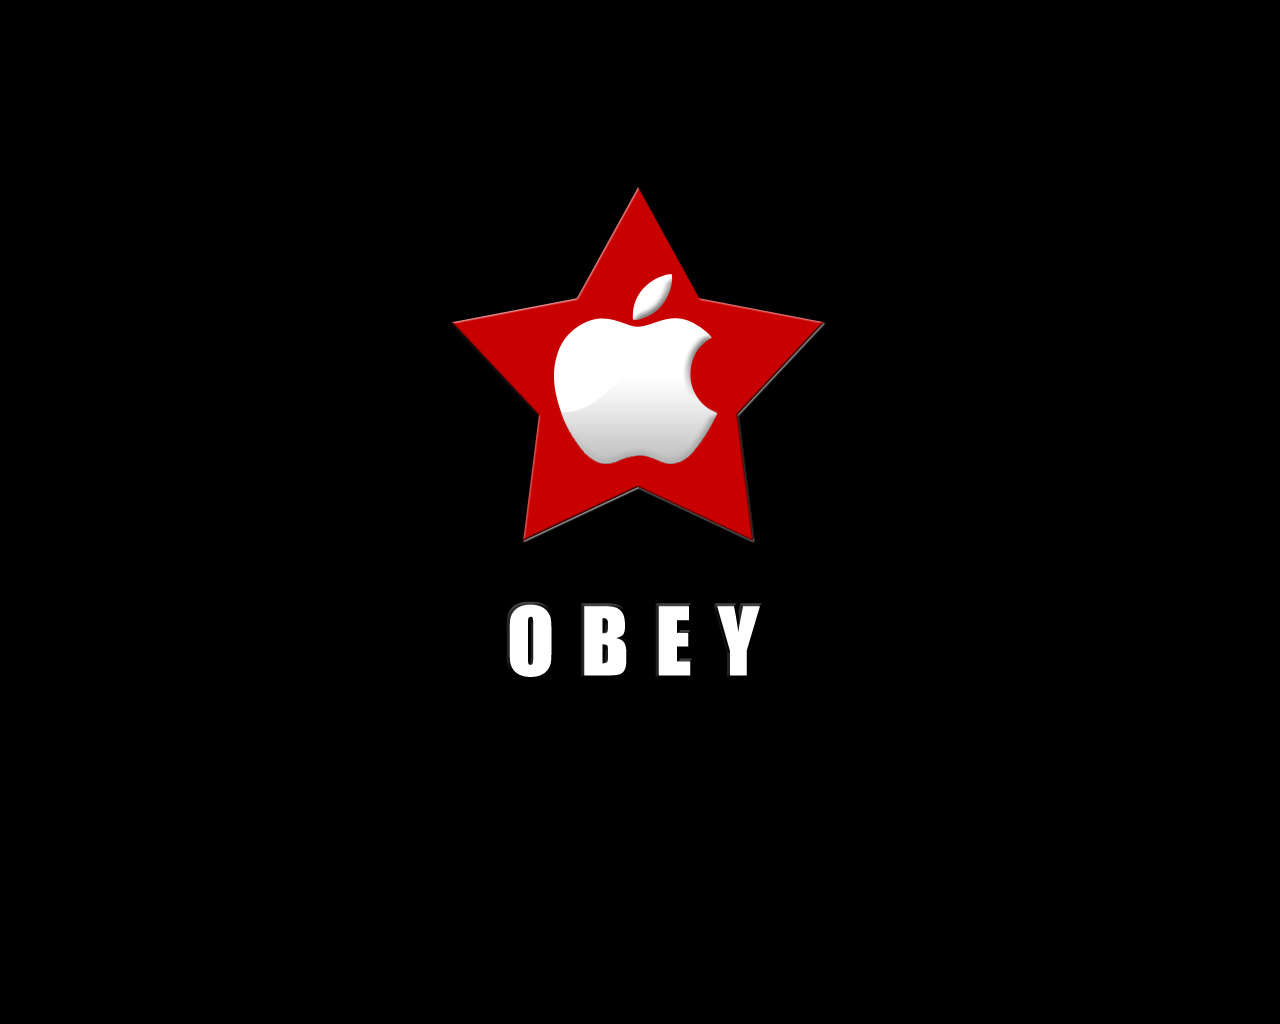 16737 Obey Cool Backgrounds Wallpaper   WalOpscom 1280x1024